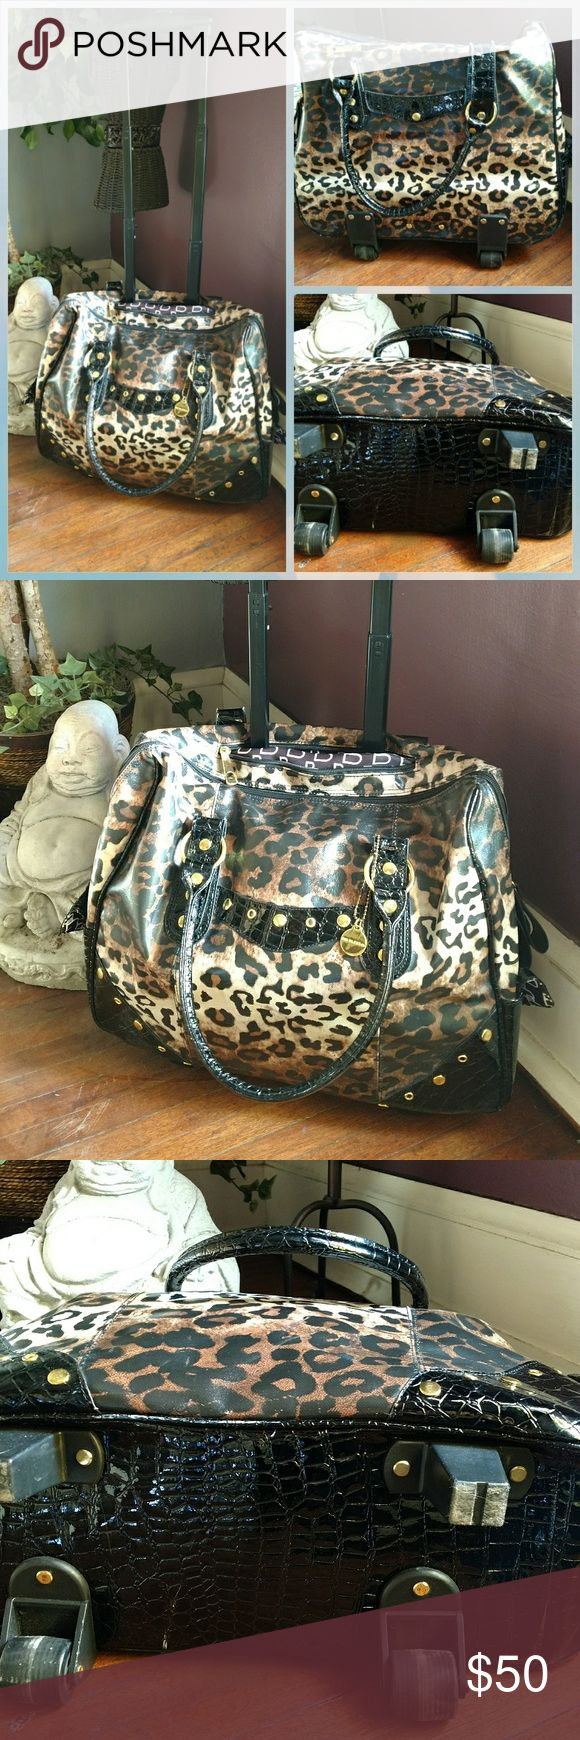 Big Buddha Rolling Leopard Print Bag I've used this a few times. It shows a little wear on the wheels as pictured otherwise it's in very good condition. Big Buddha Bags Travel Bags